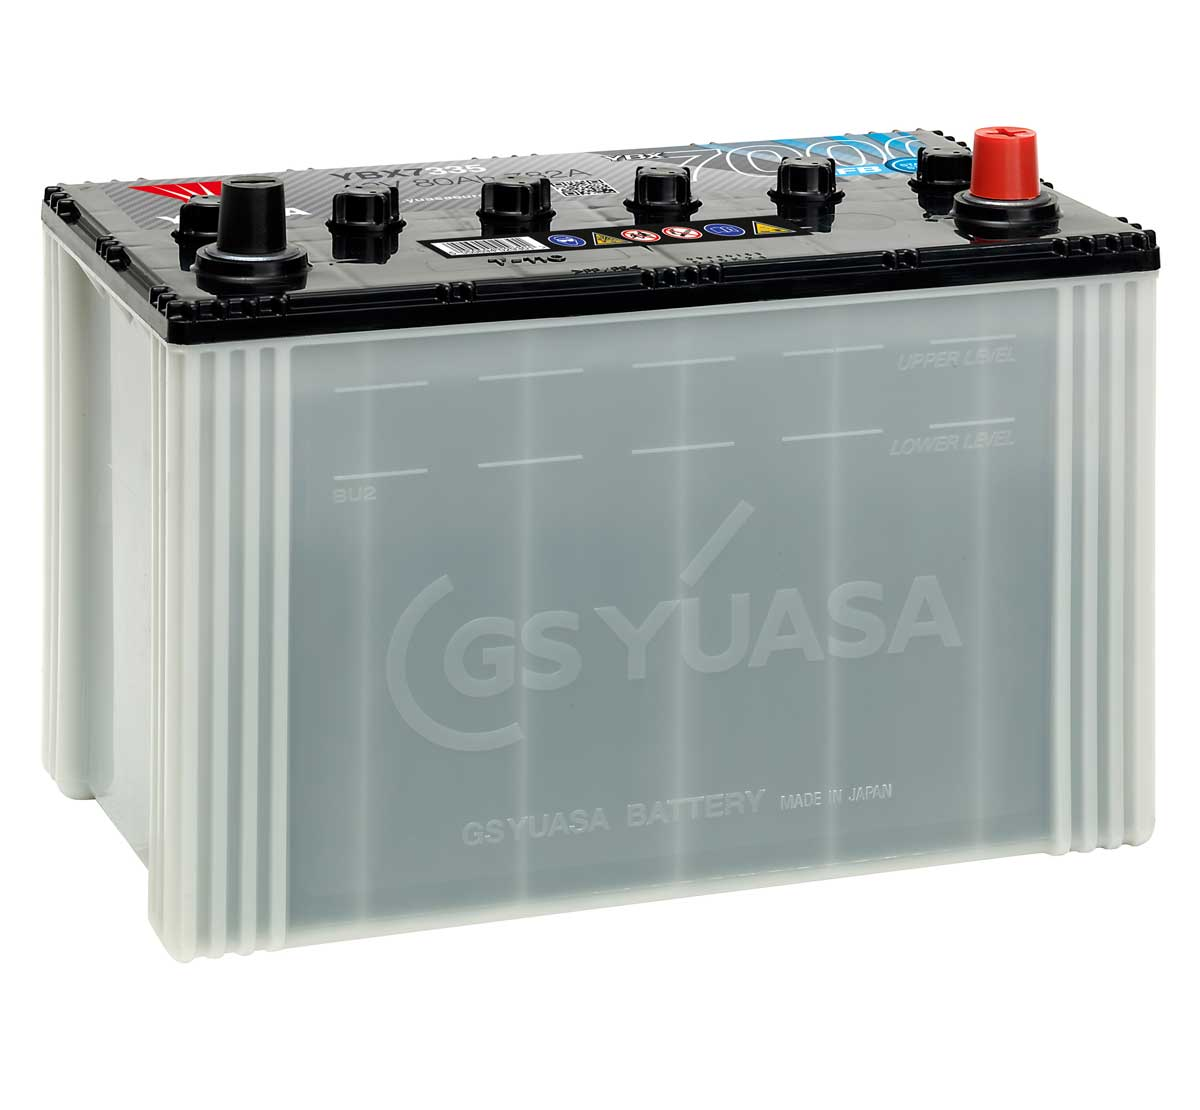 Yuasa YBX7335 12V Stop Start 335 Car Battery